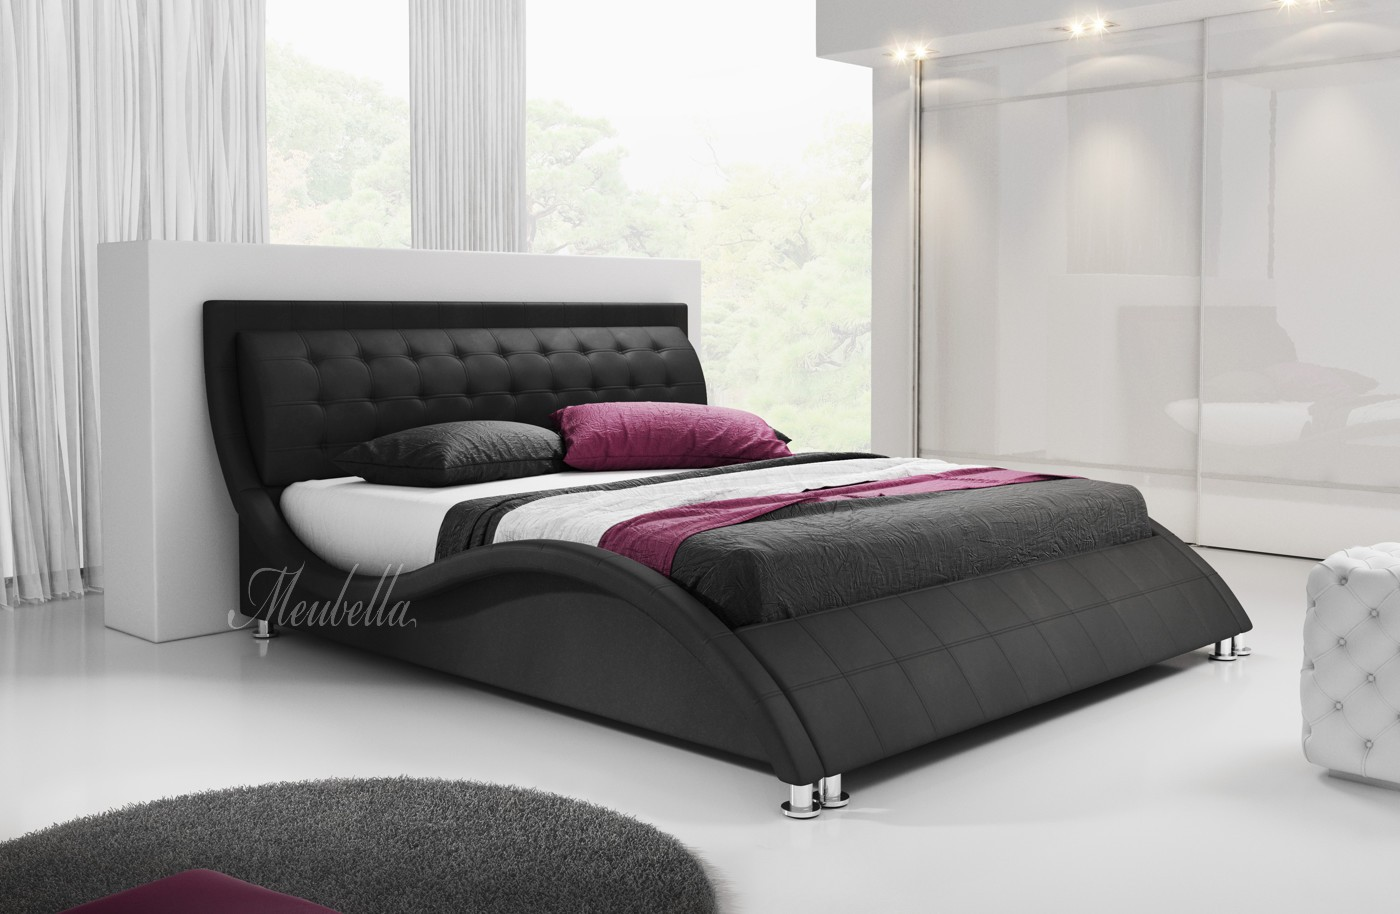 tweepersoonsbed sumoya zwart 160x200 cm meubella. Black Bedroom Furniture Sets. Home Design Ideas